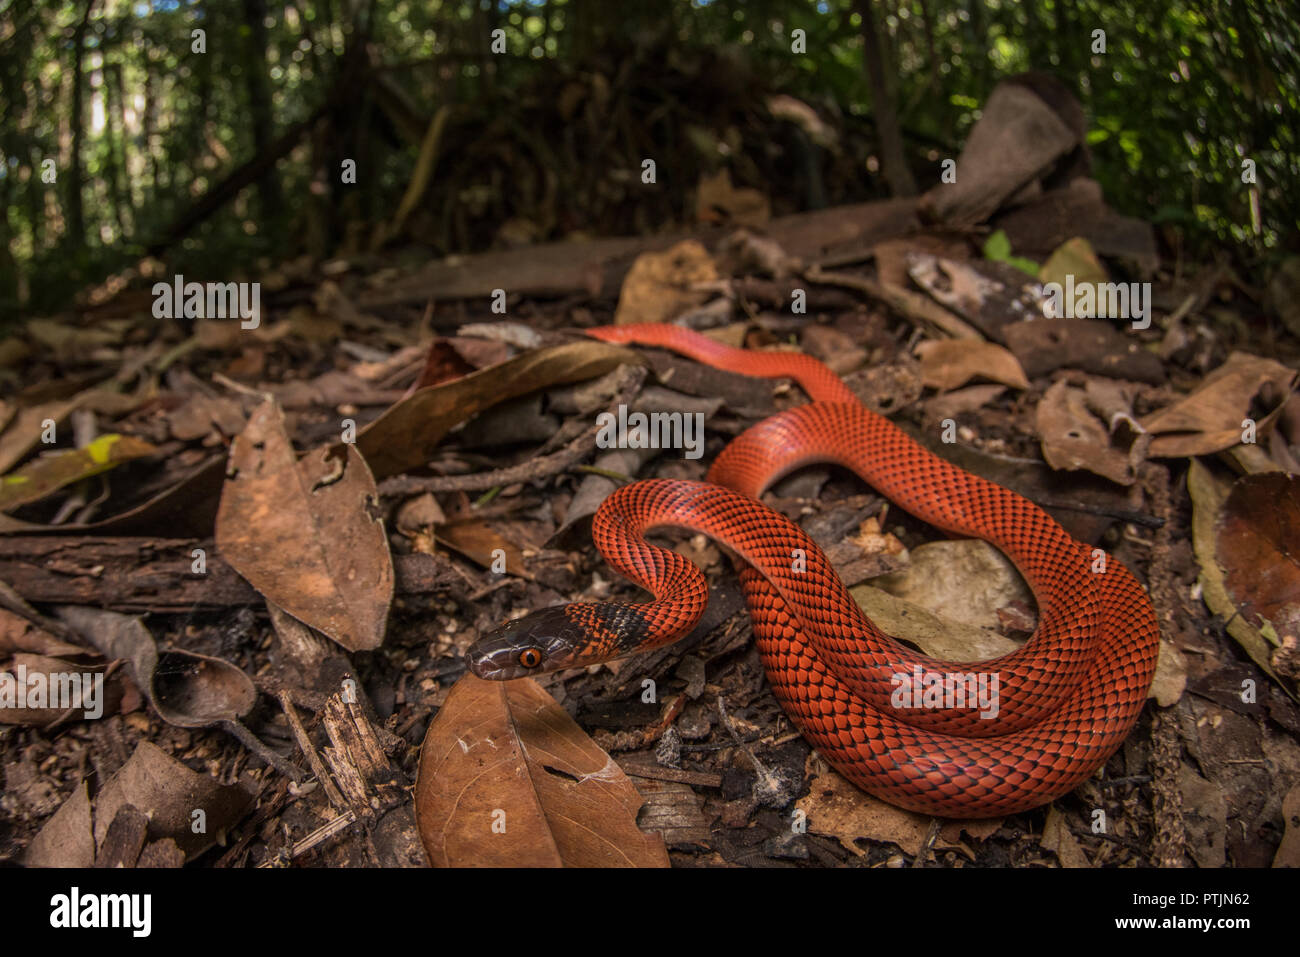 Oxyrhopus melanogenys,  Tschudi's false coral snake, is a harmless species that looks very similar to some dangerous coral snake species. - Stock Image